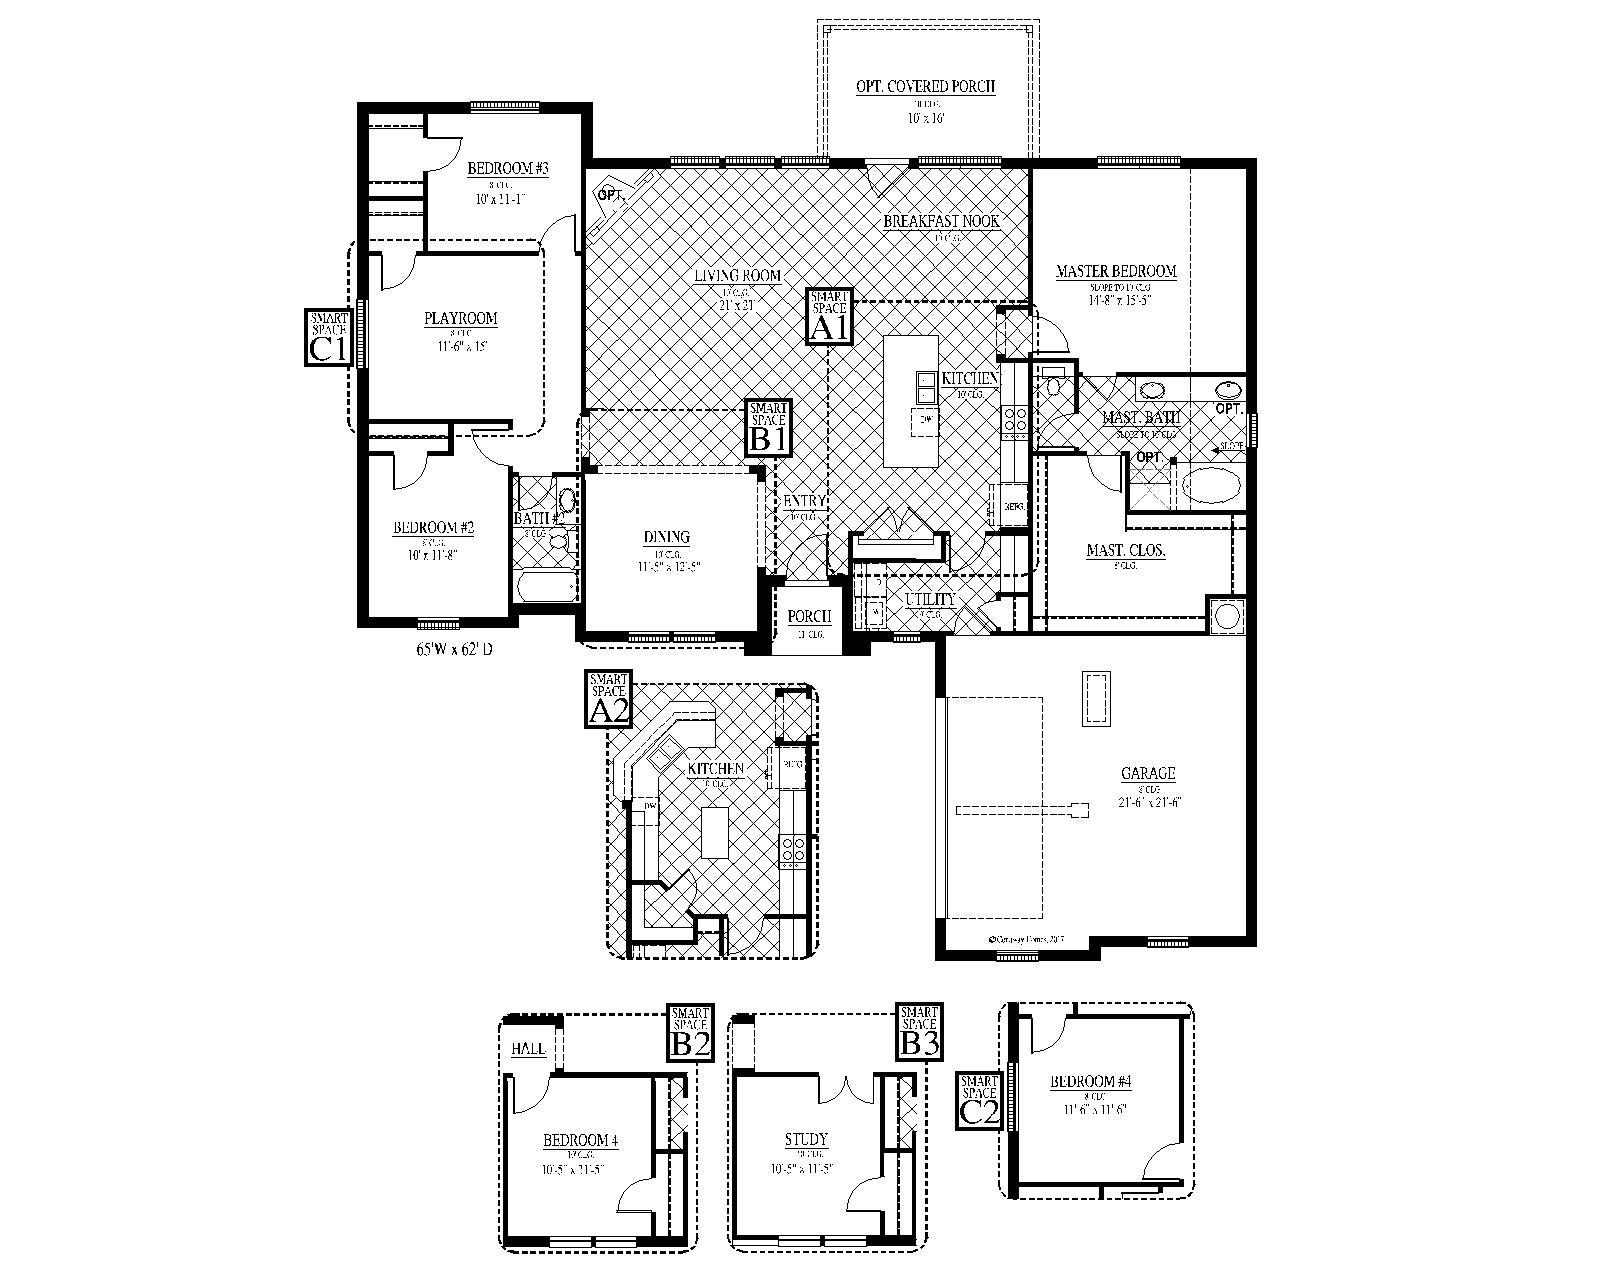 [FLEX PLAN] Giddings-II Floorplan